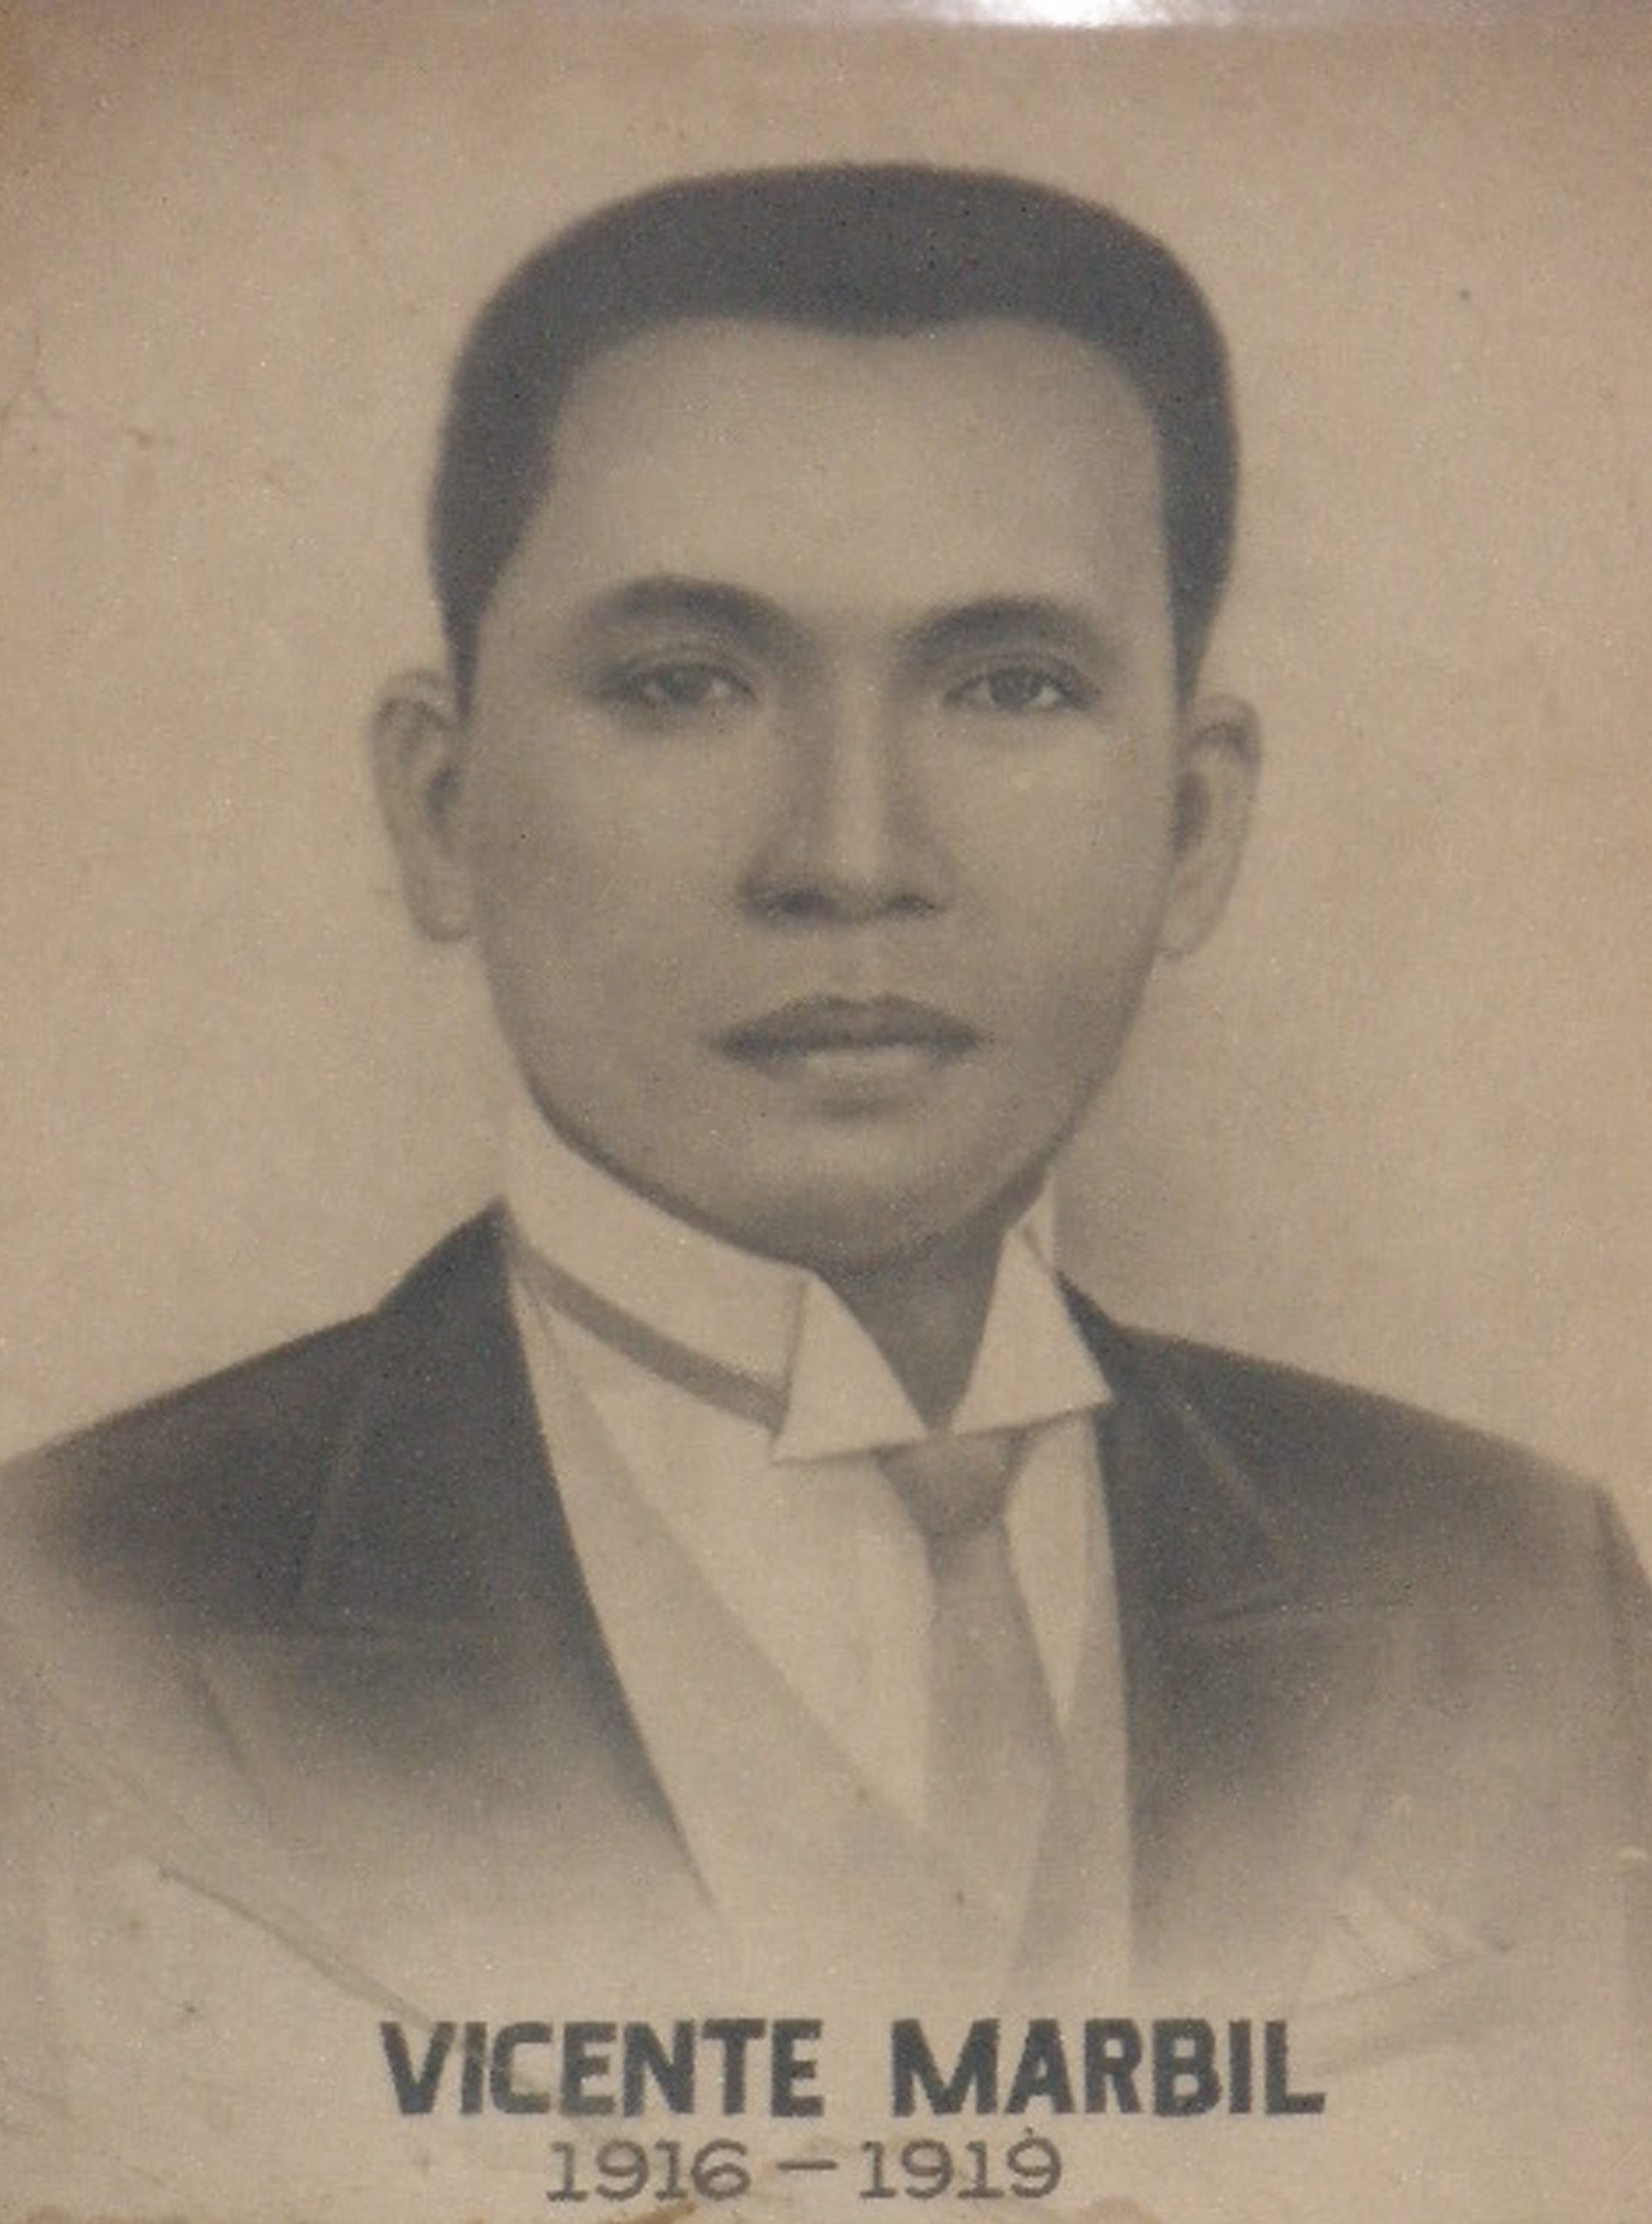 Mayor Vicente Marbil (1916-1919)